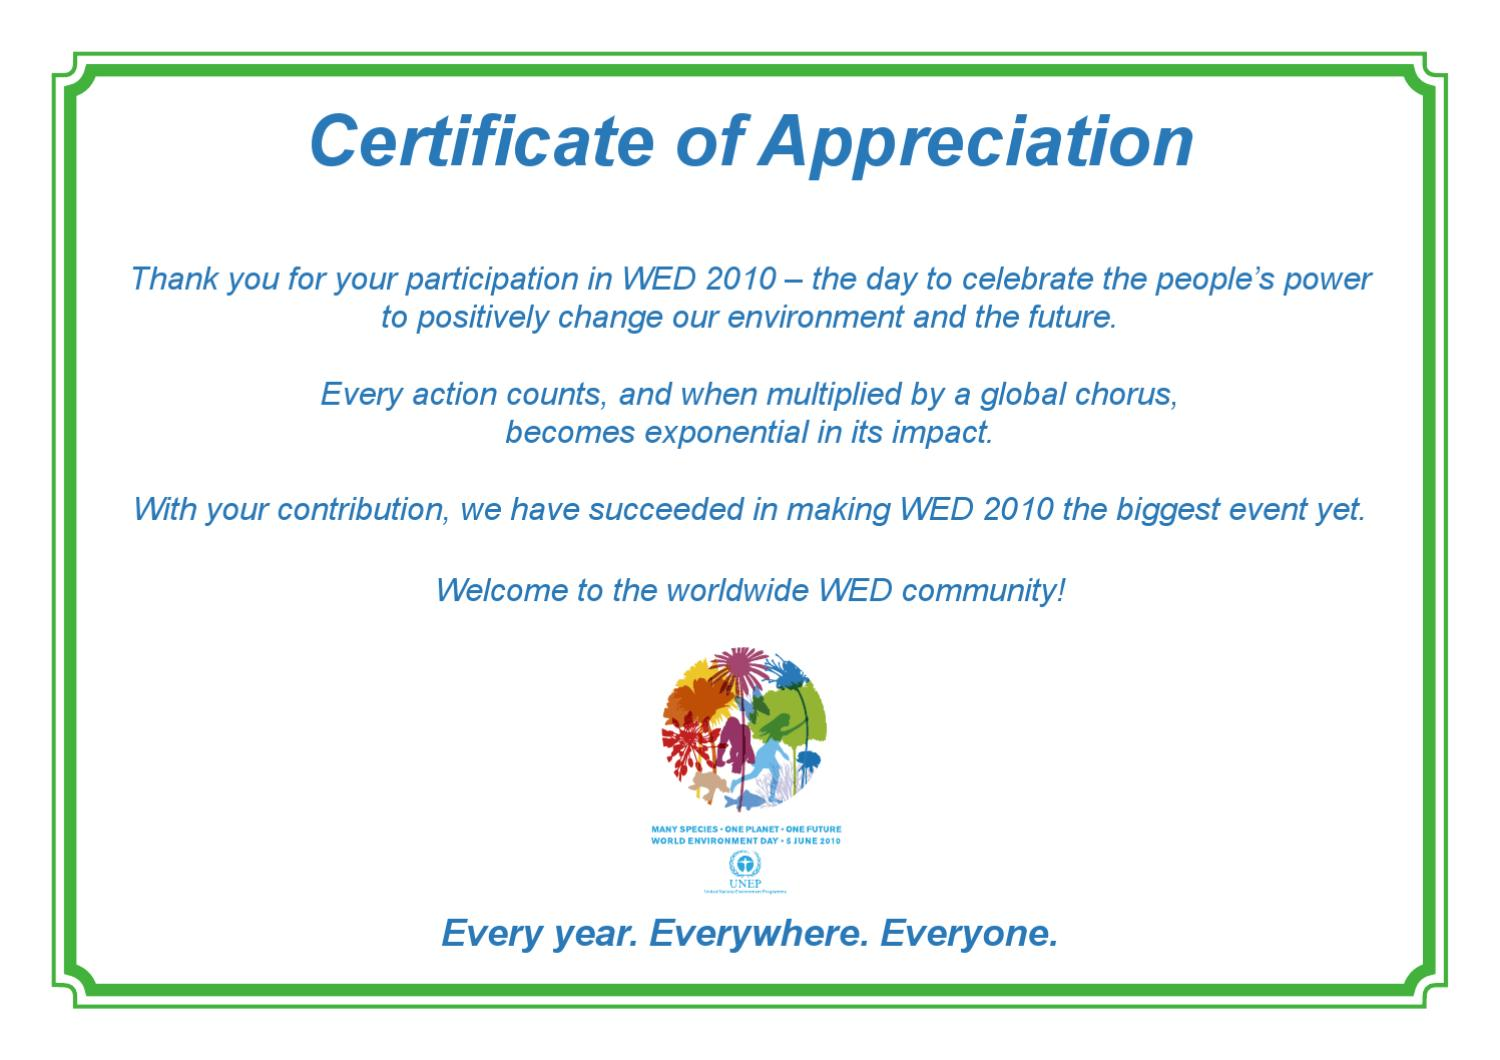 wed certificate of appreciation by clean up israel